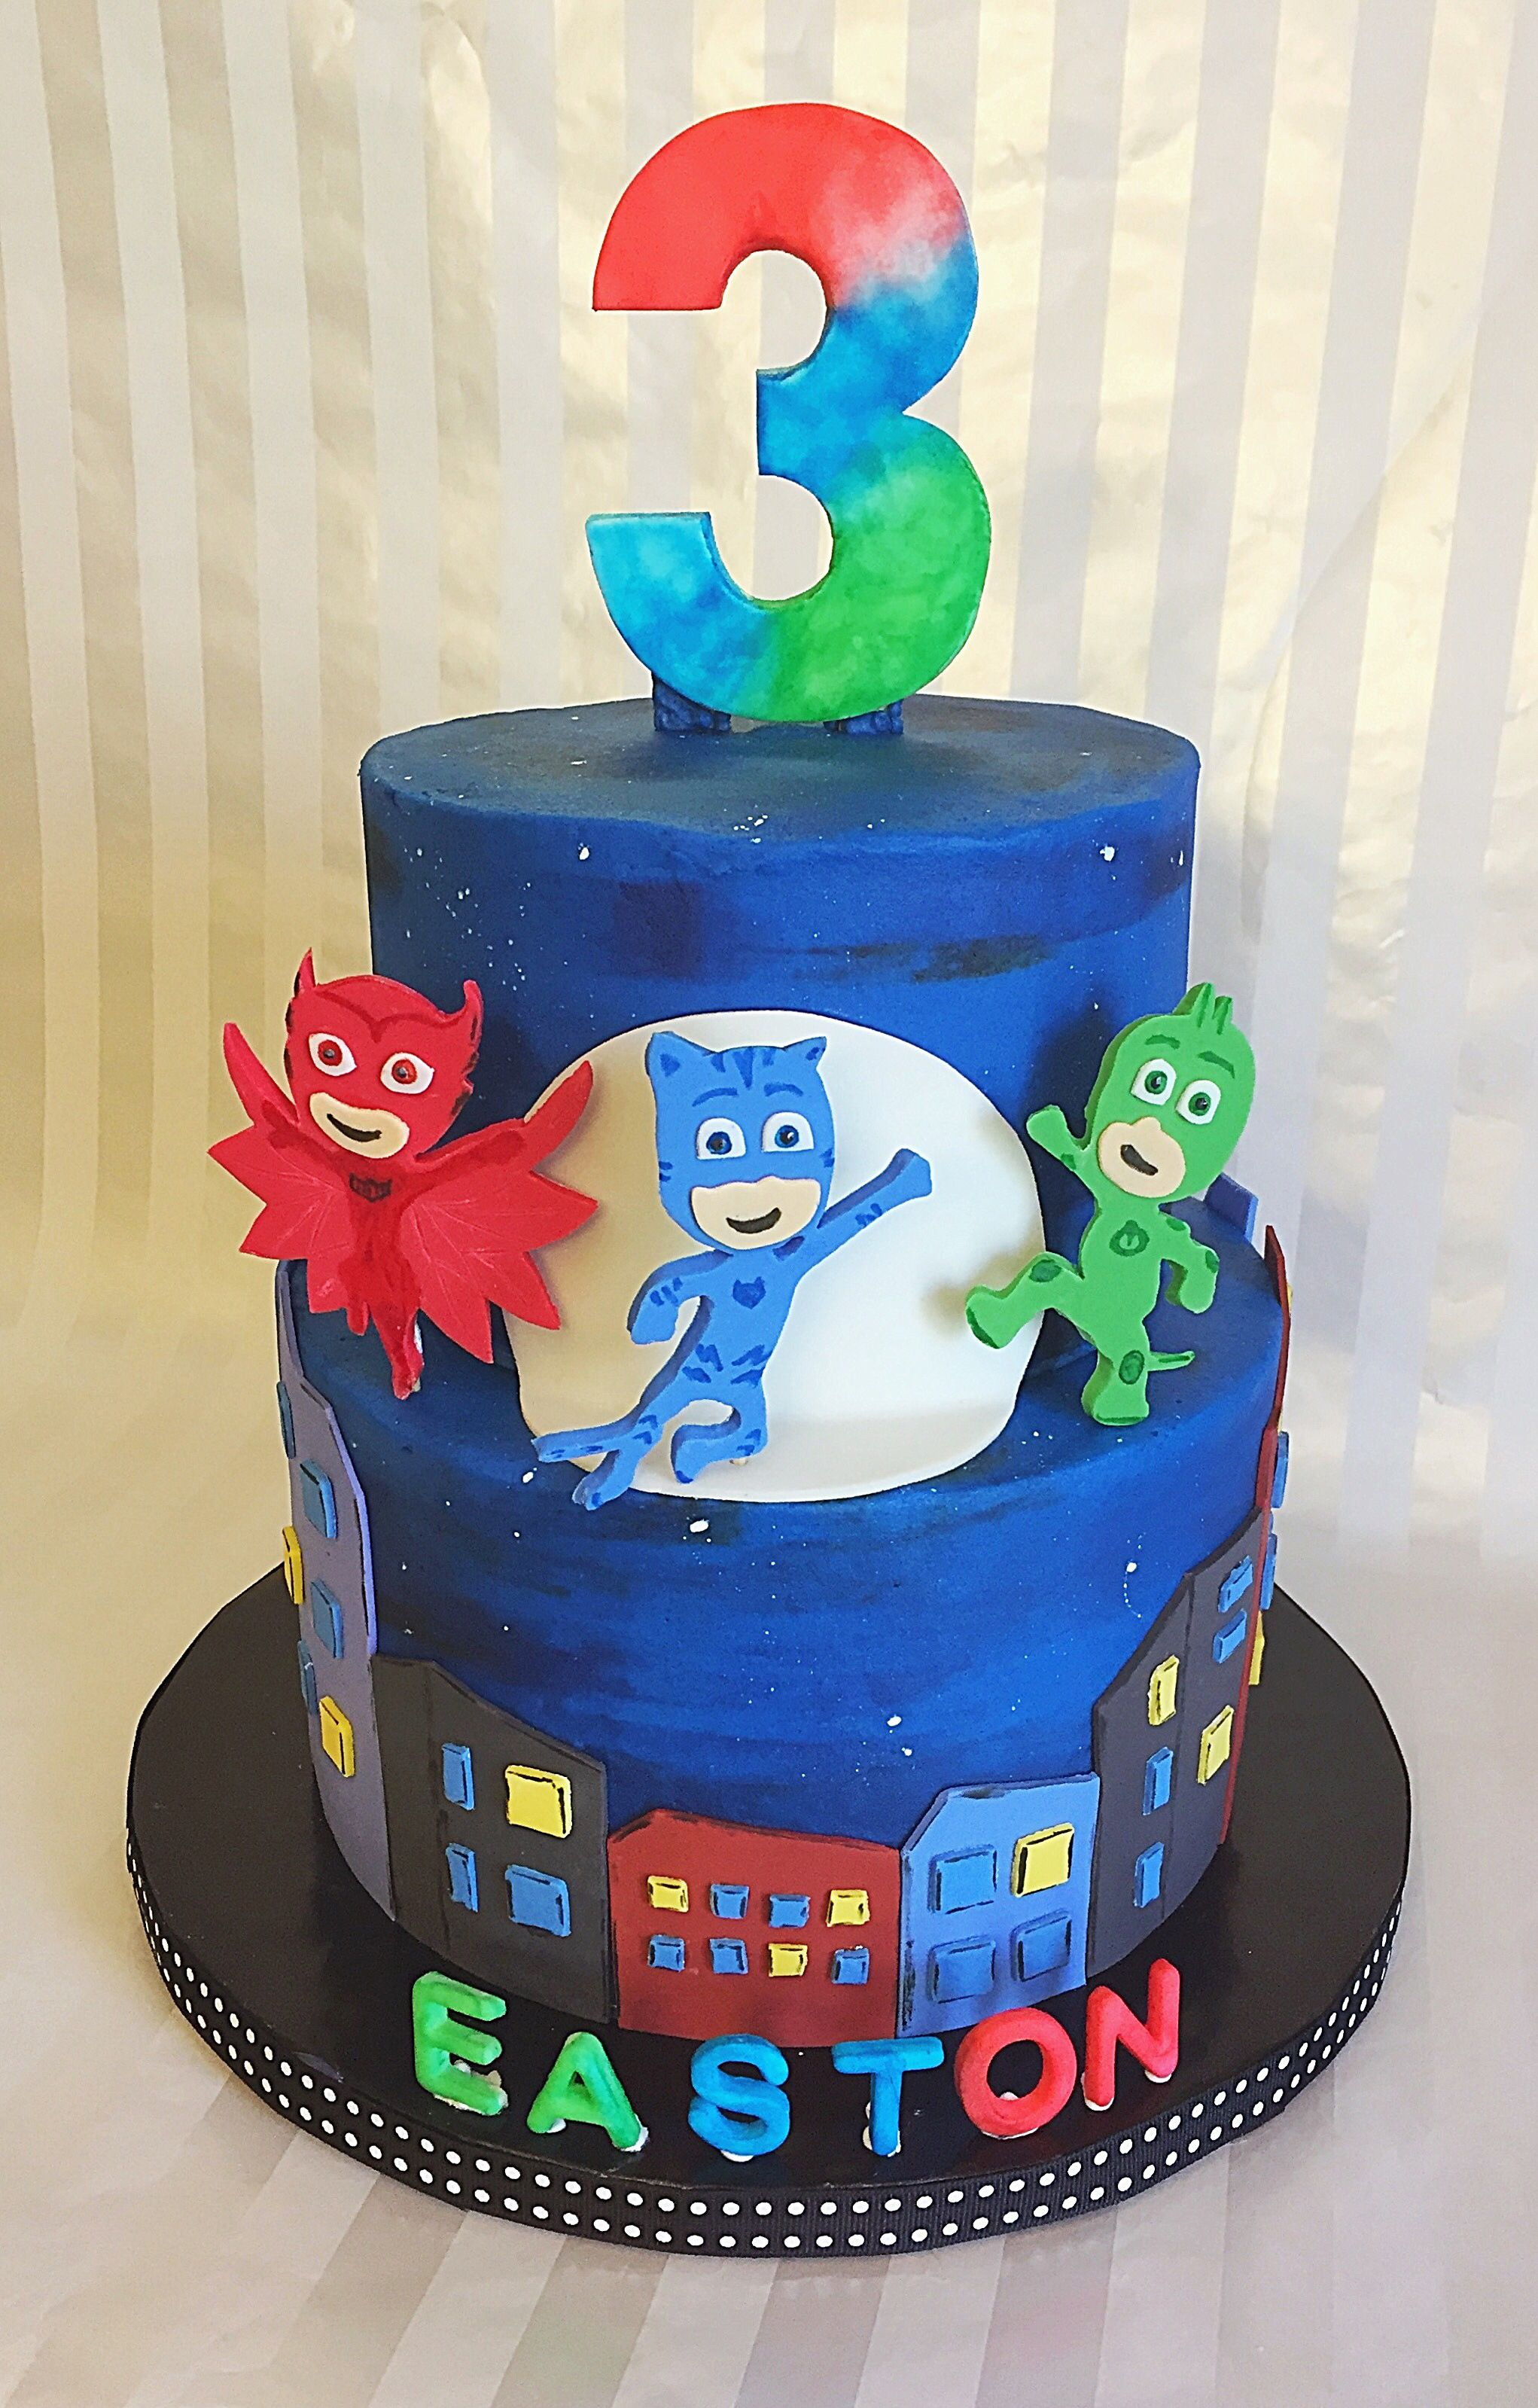 Pj Mask Birthday Cake Pj Masks Birthday Cake Cake Cake Decorating